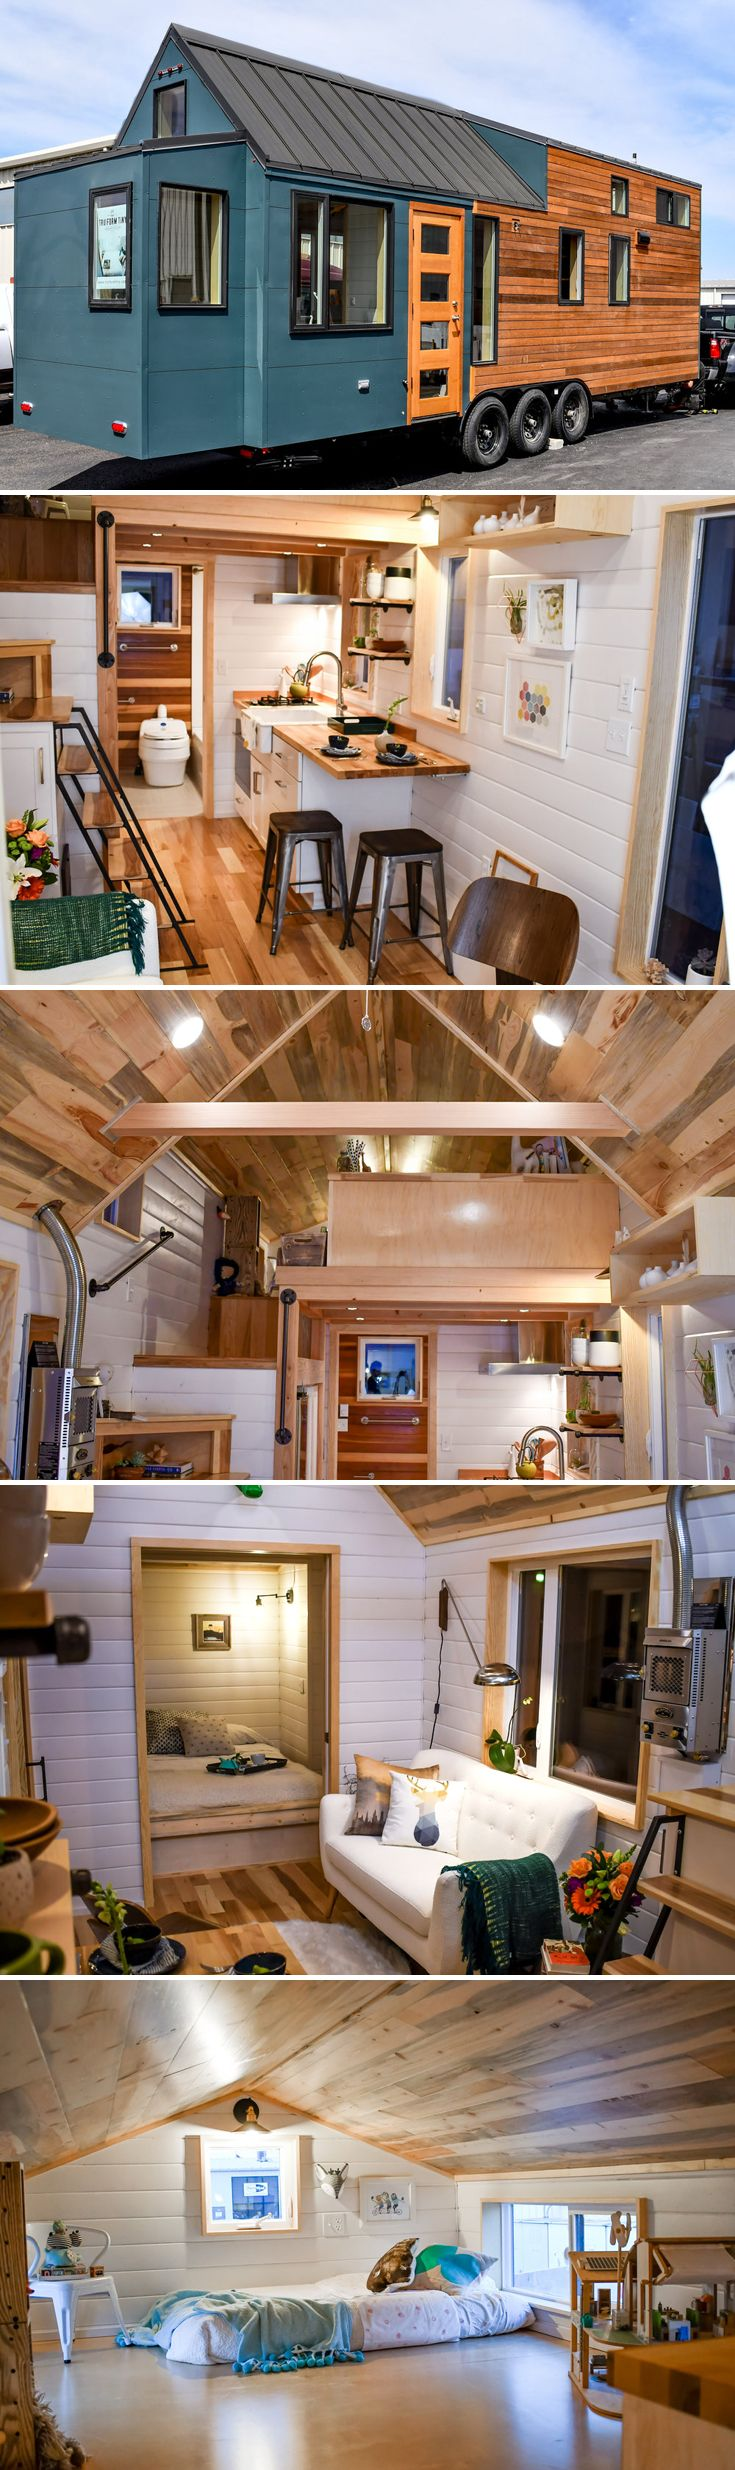 From TruForm Tiny is the 28' Payette Urban, a modern style tiny house with off-grid capabilities and main floor bedroom.